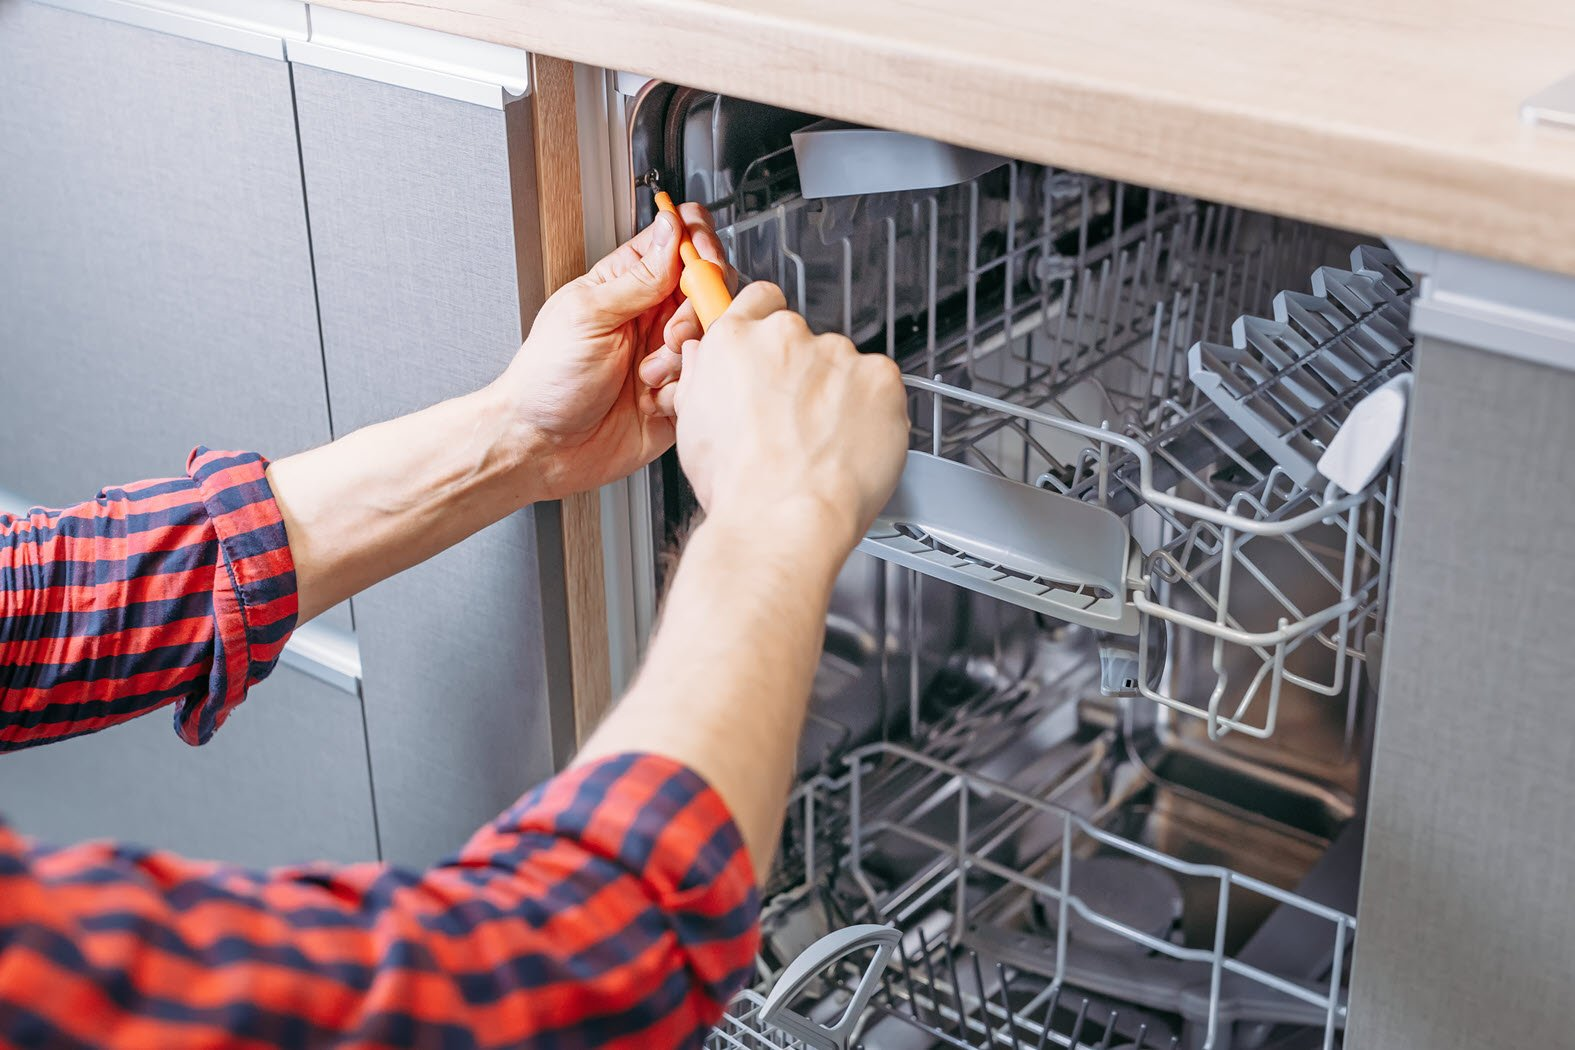 Repairing Major Appliances